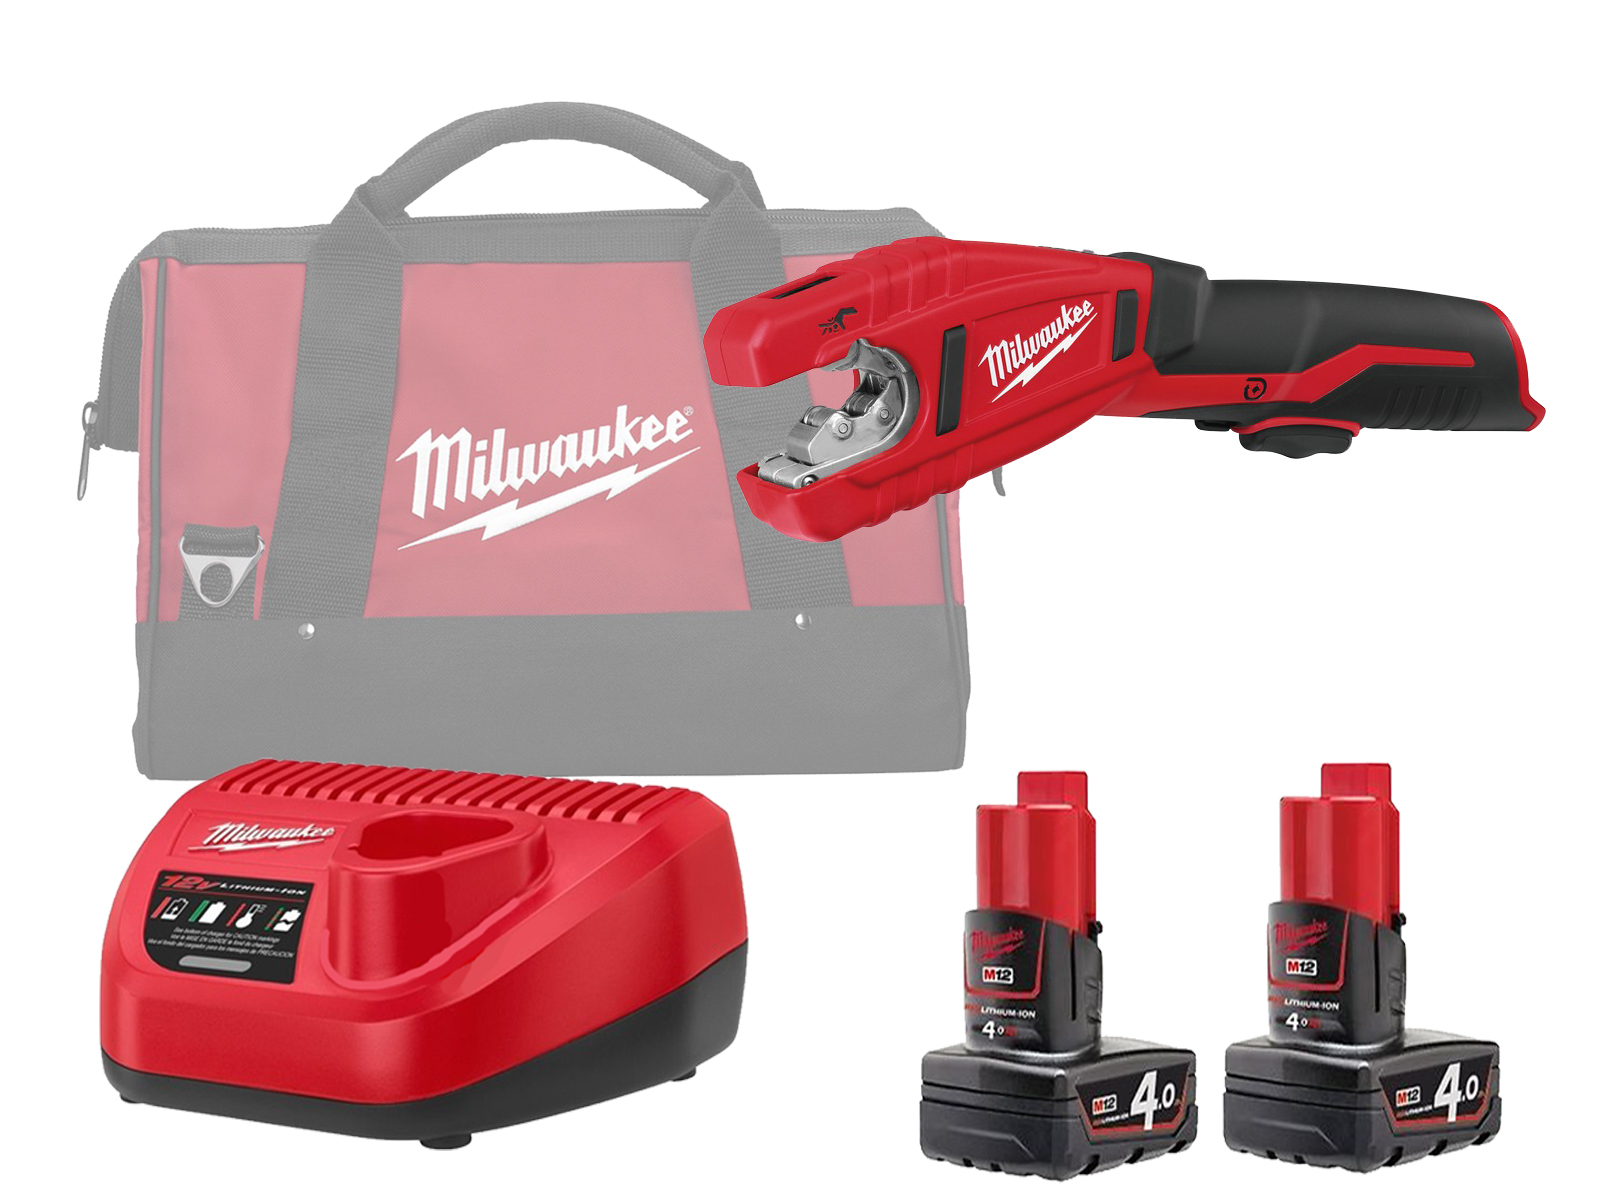 Milwaukee C12PC 12V Sub Compact Copper Pipe Cutter 12mm - 28mm - 4.0ah Pack